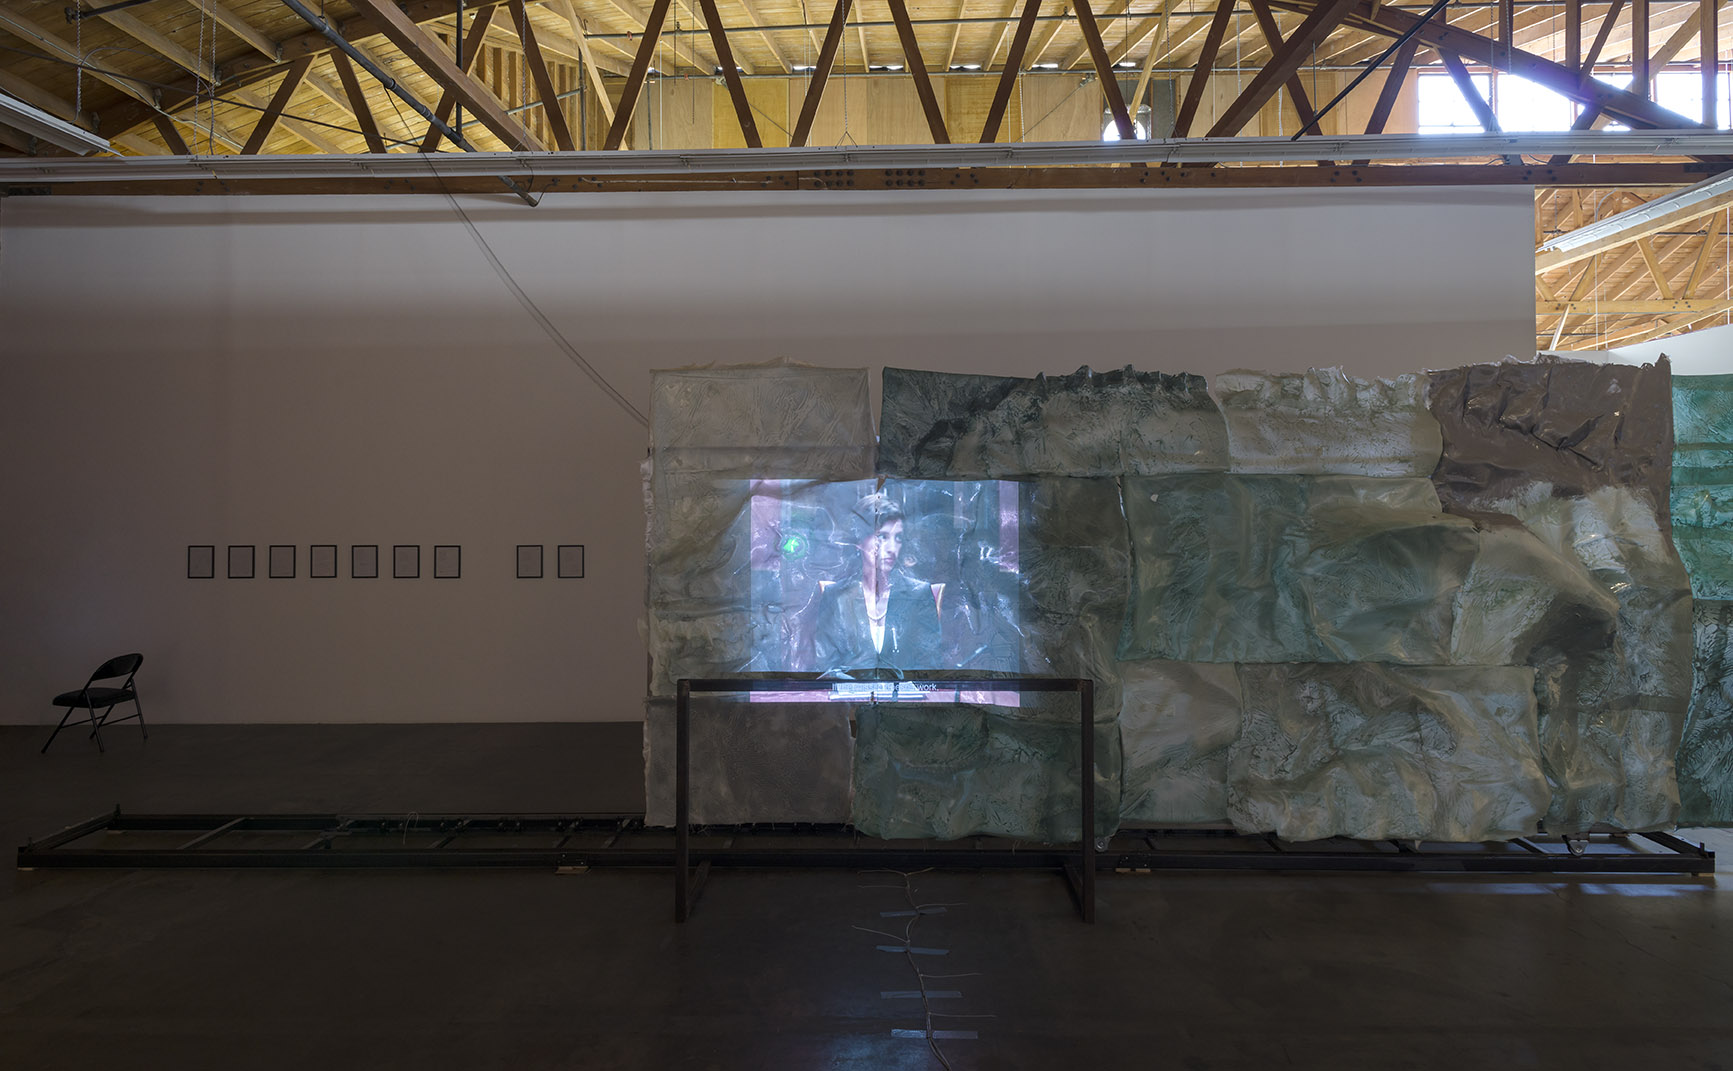 17_Beloufa_Democracy_Installation View